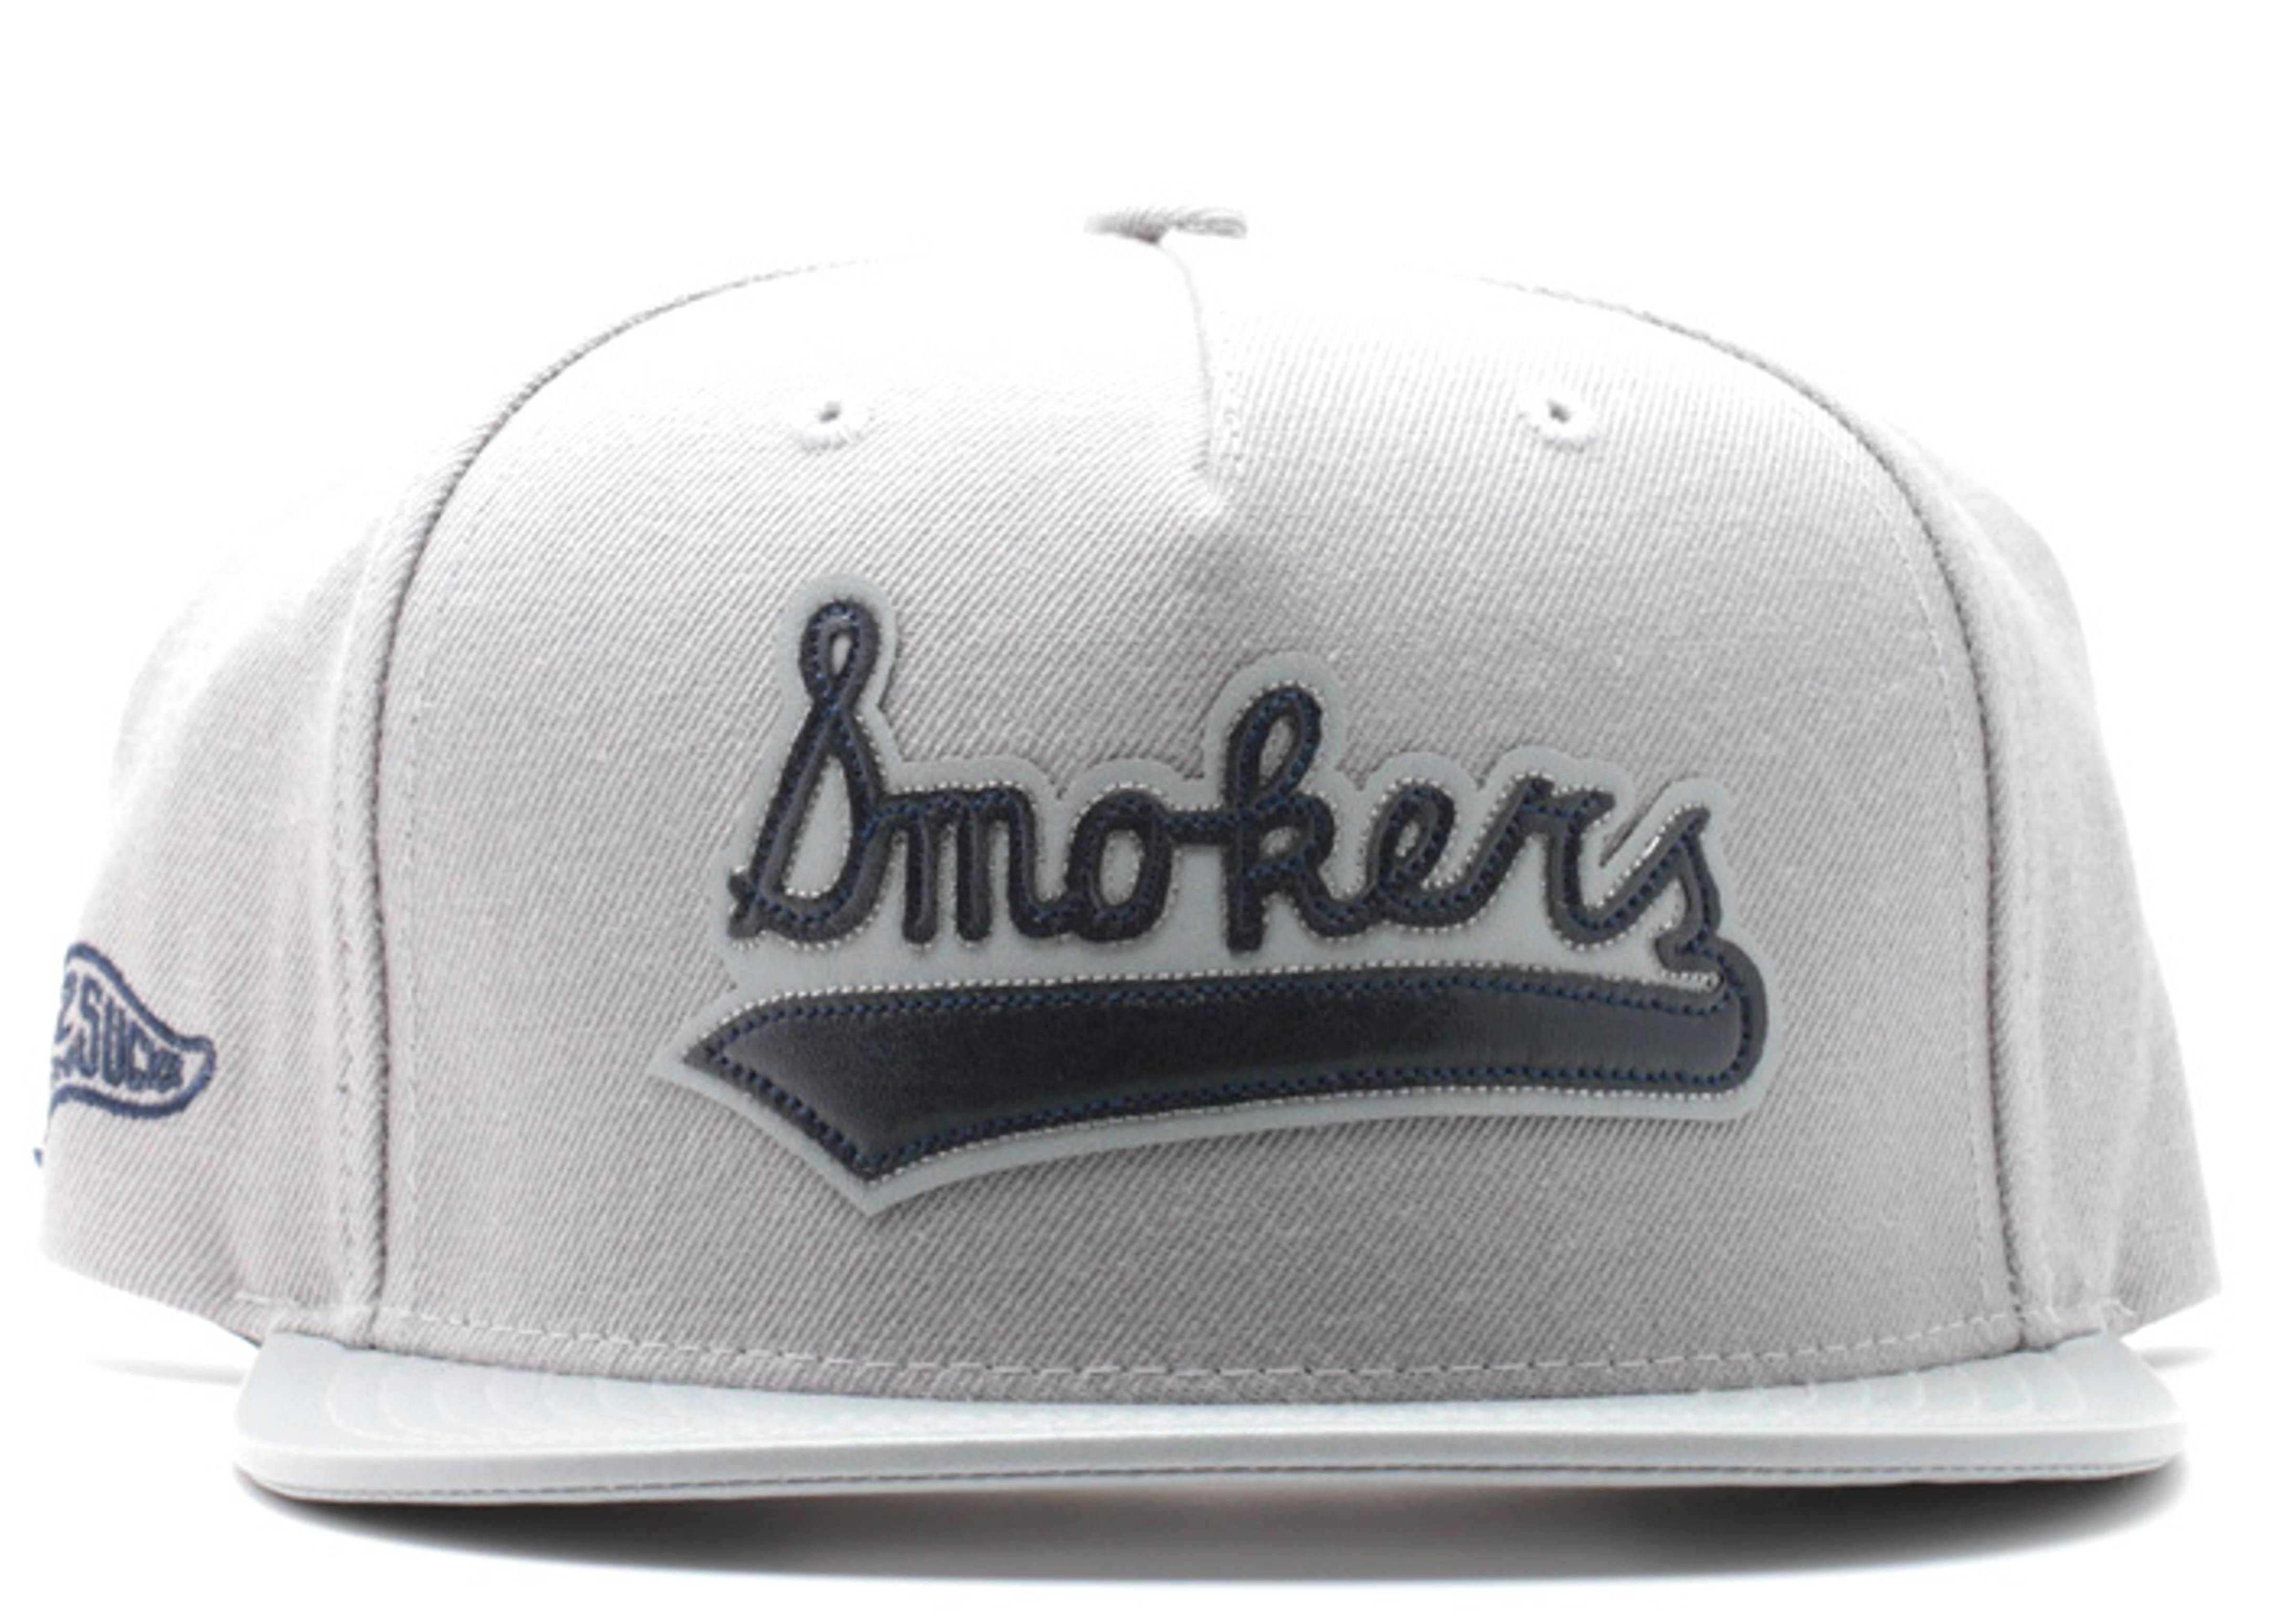 smokers snap-back